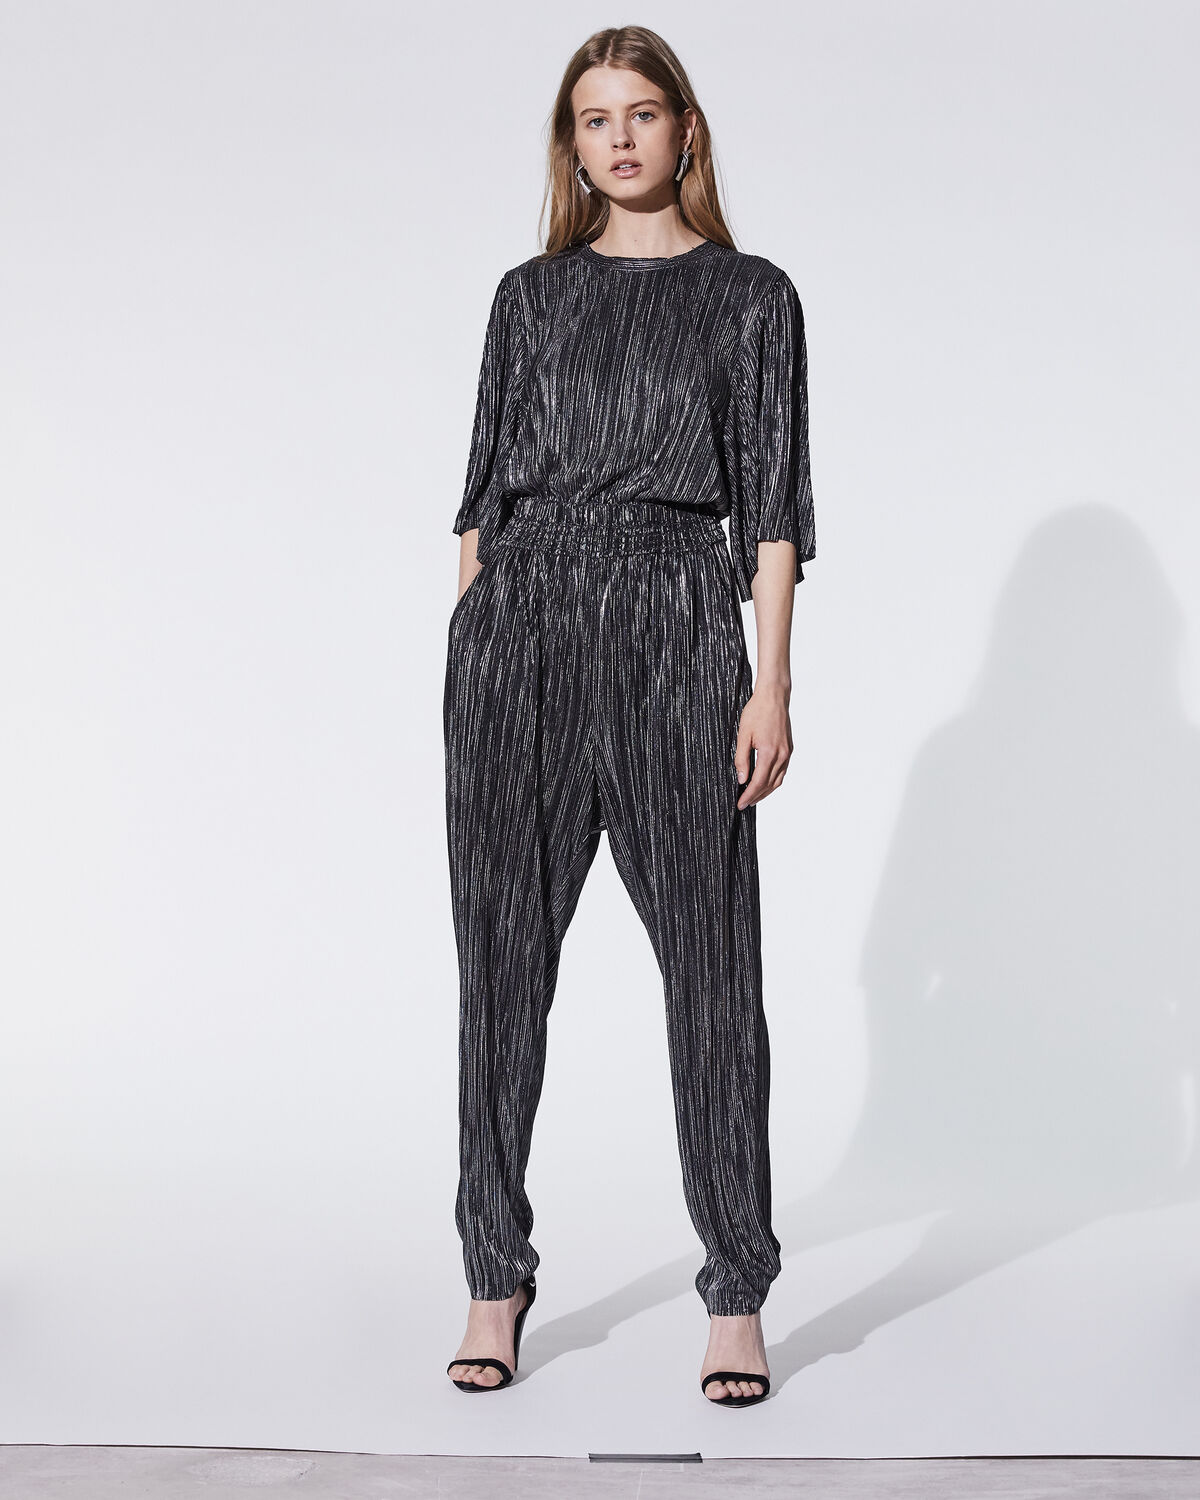 Chimbote Jumpsuit Black And Silver by IRO Paris